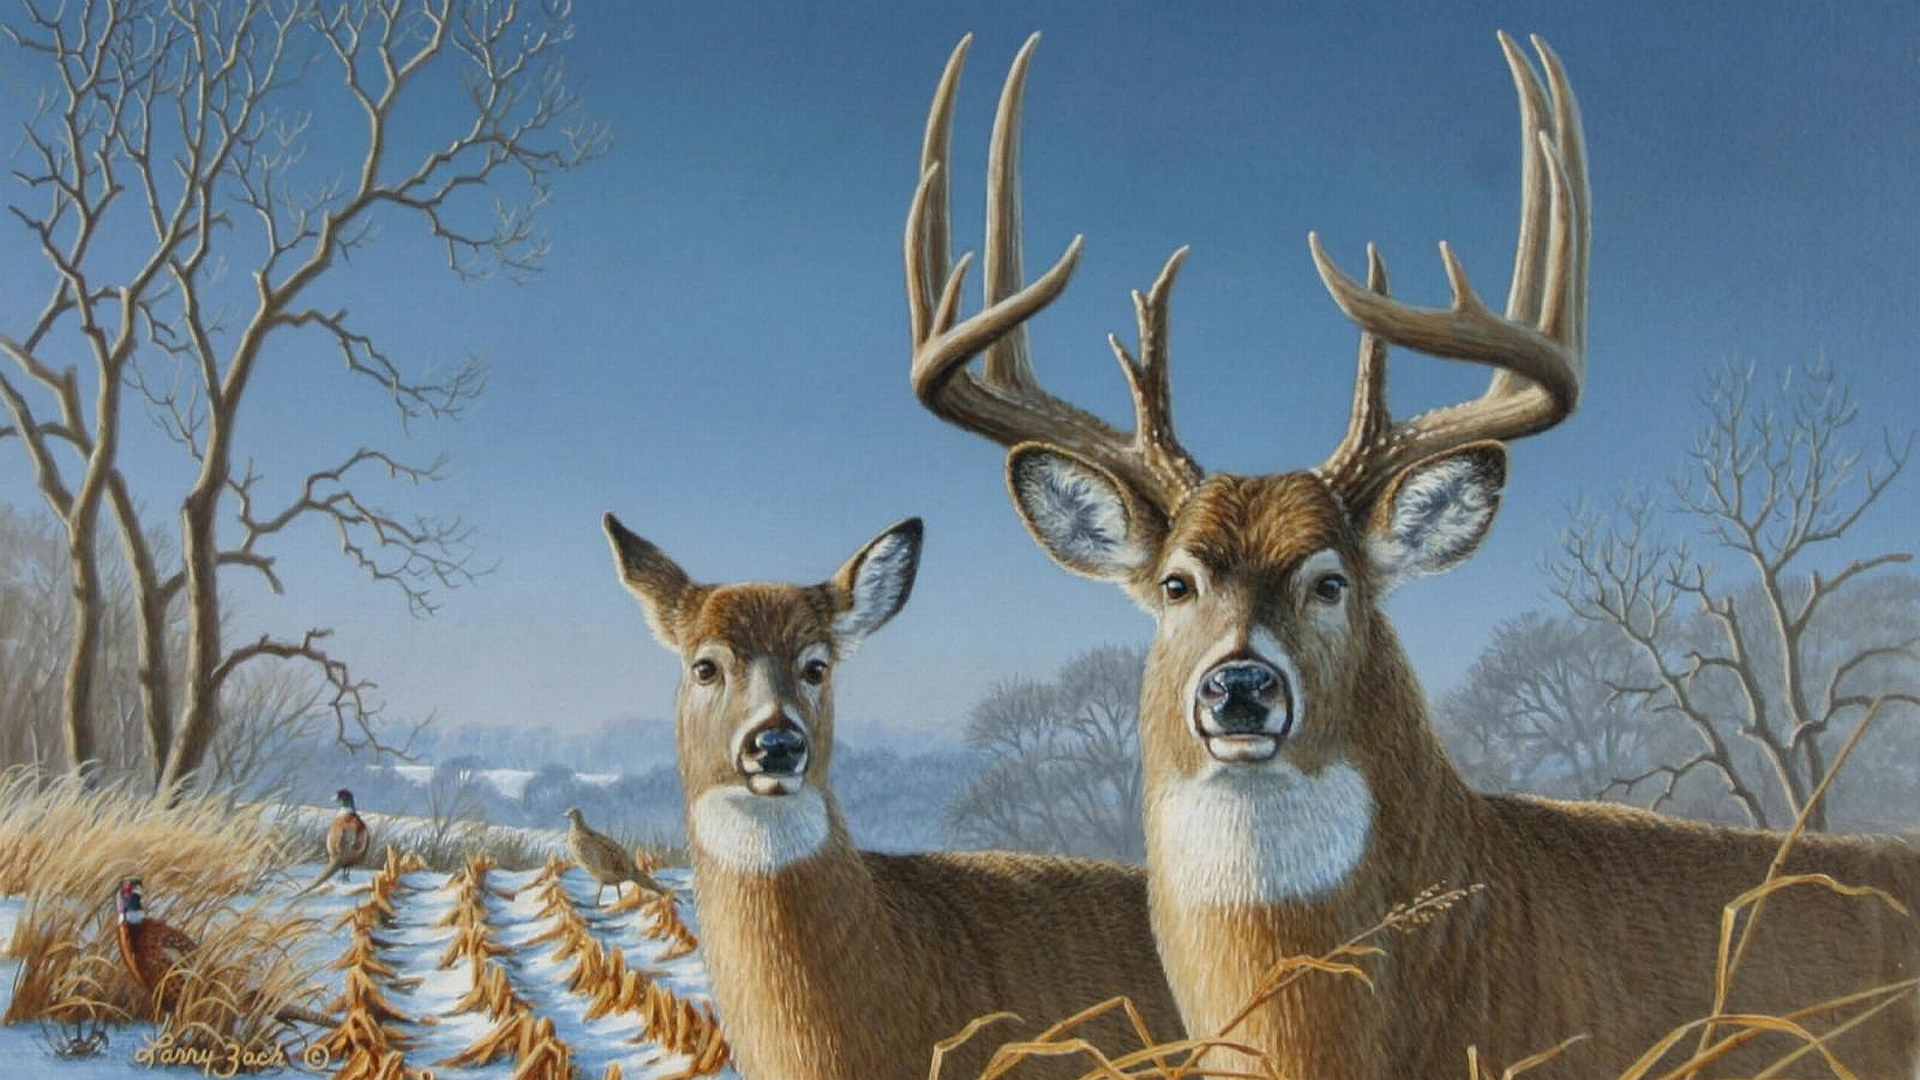 animal deer wallpaper 1920x1080 - photo #4